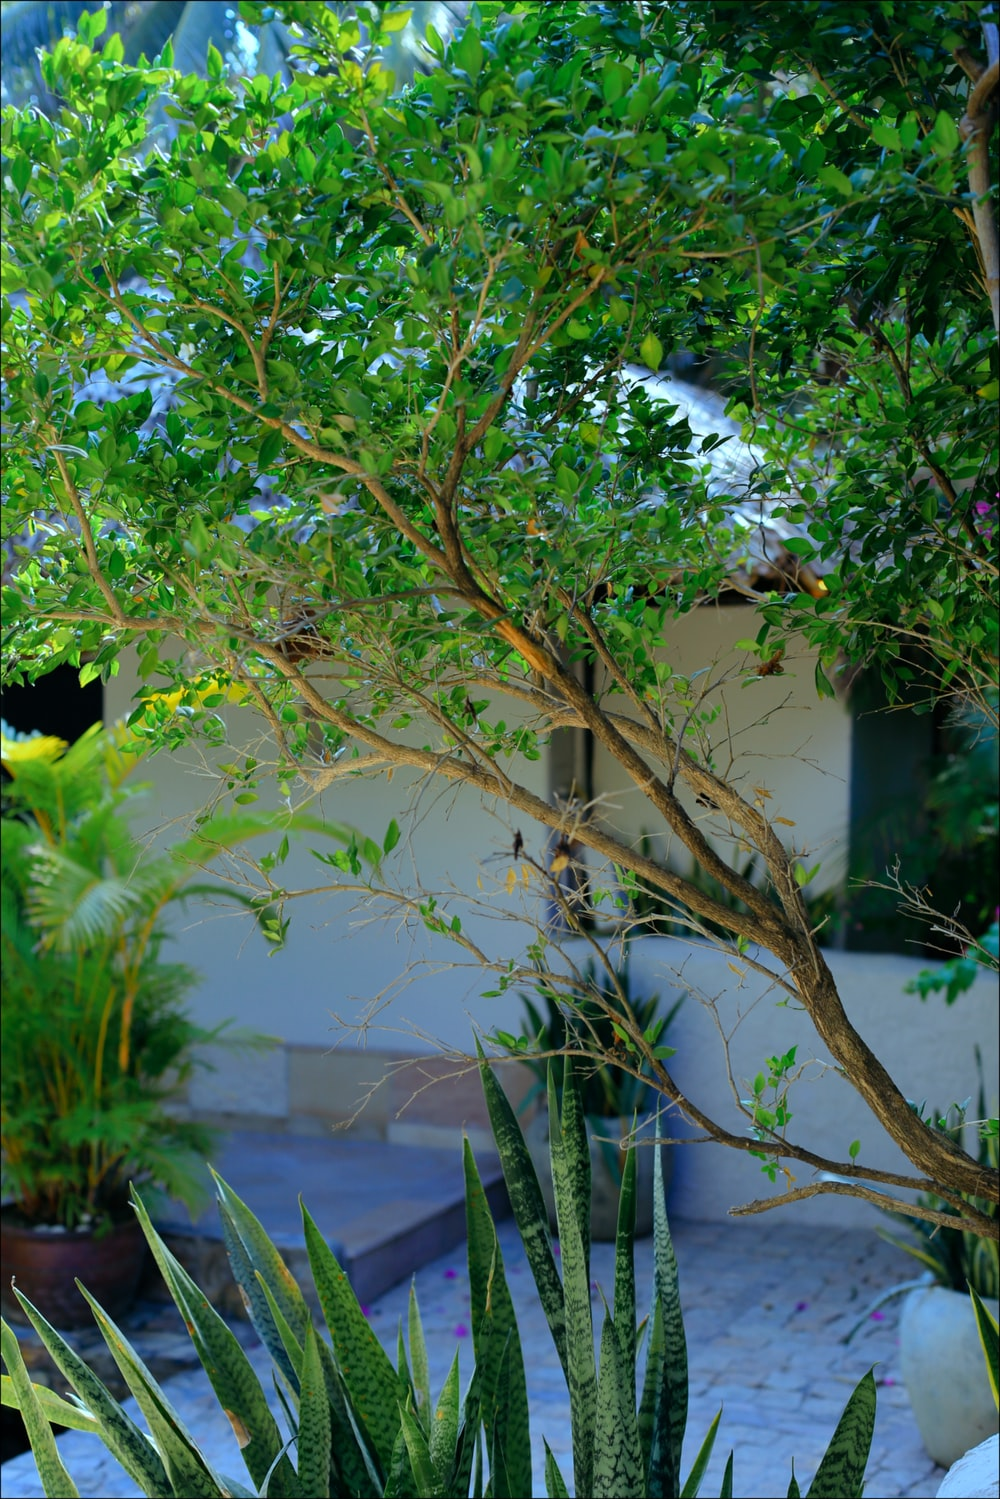 green tree near white concrete building during daytime